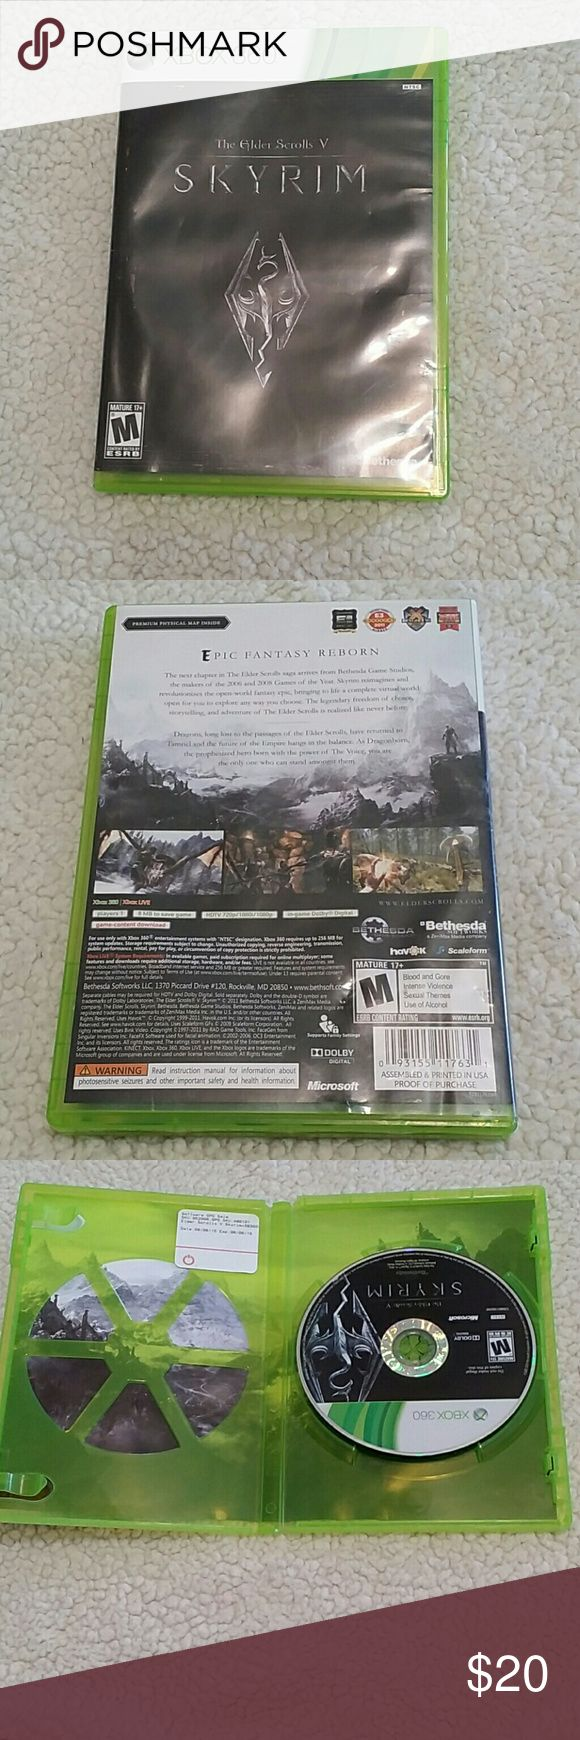 XBOX 360 skyrim The Elder Scrolls V The game is in great condition Barely Used. Only a couple of blemishes on the disc doesn't affect the game at all. XBOX 360 Accessories